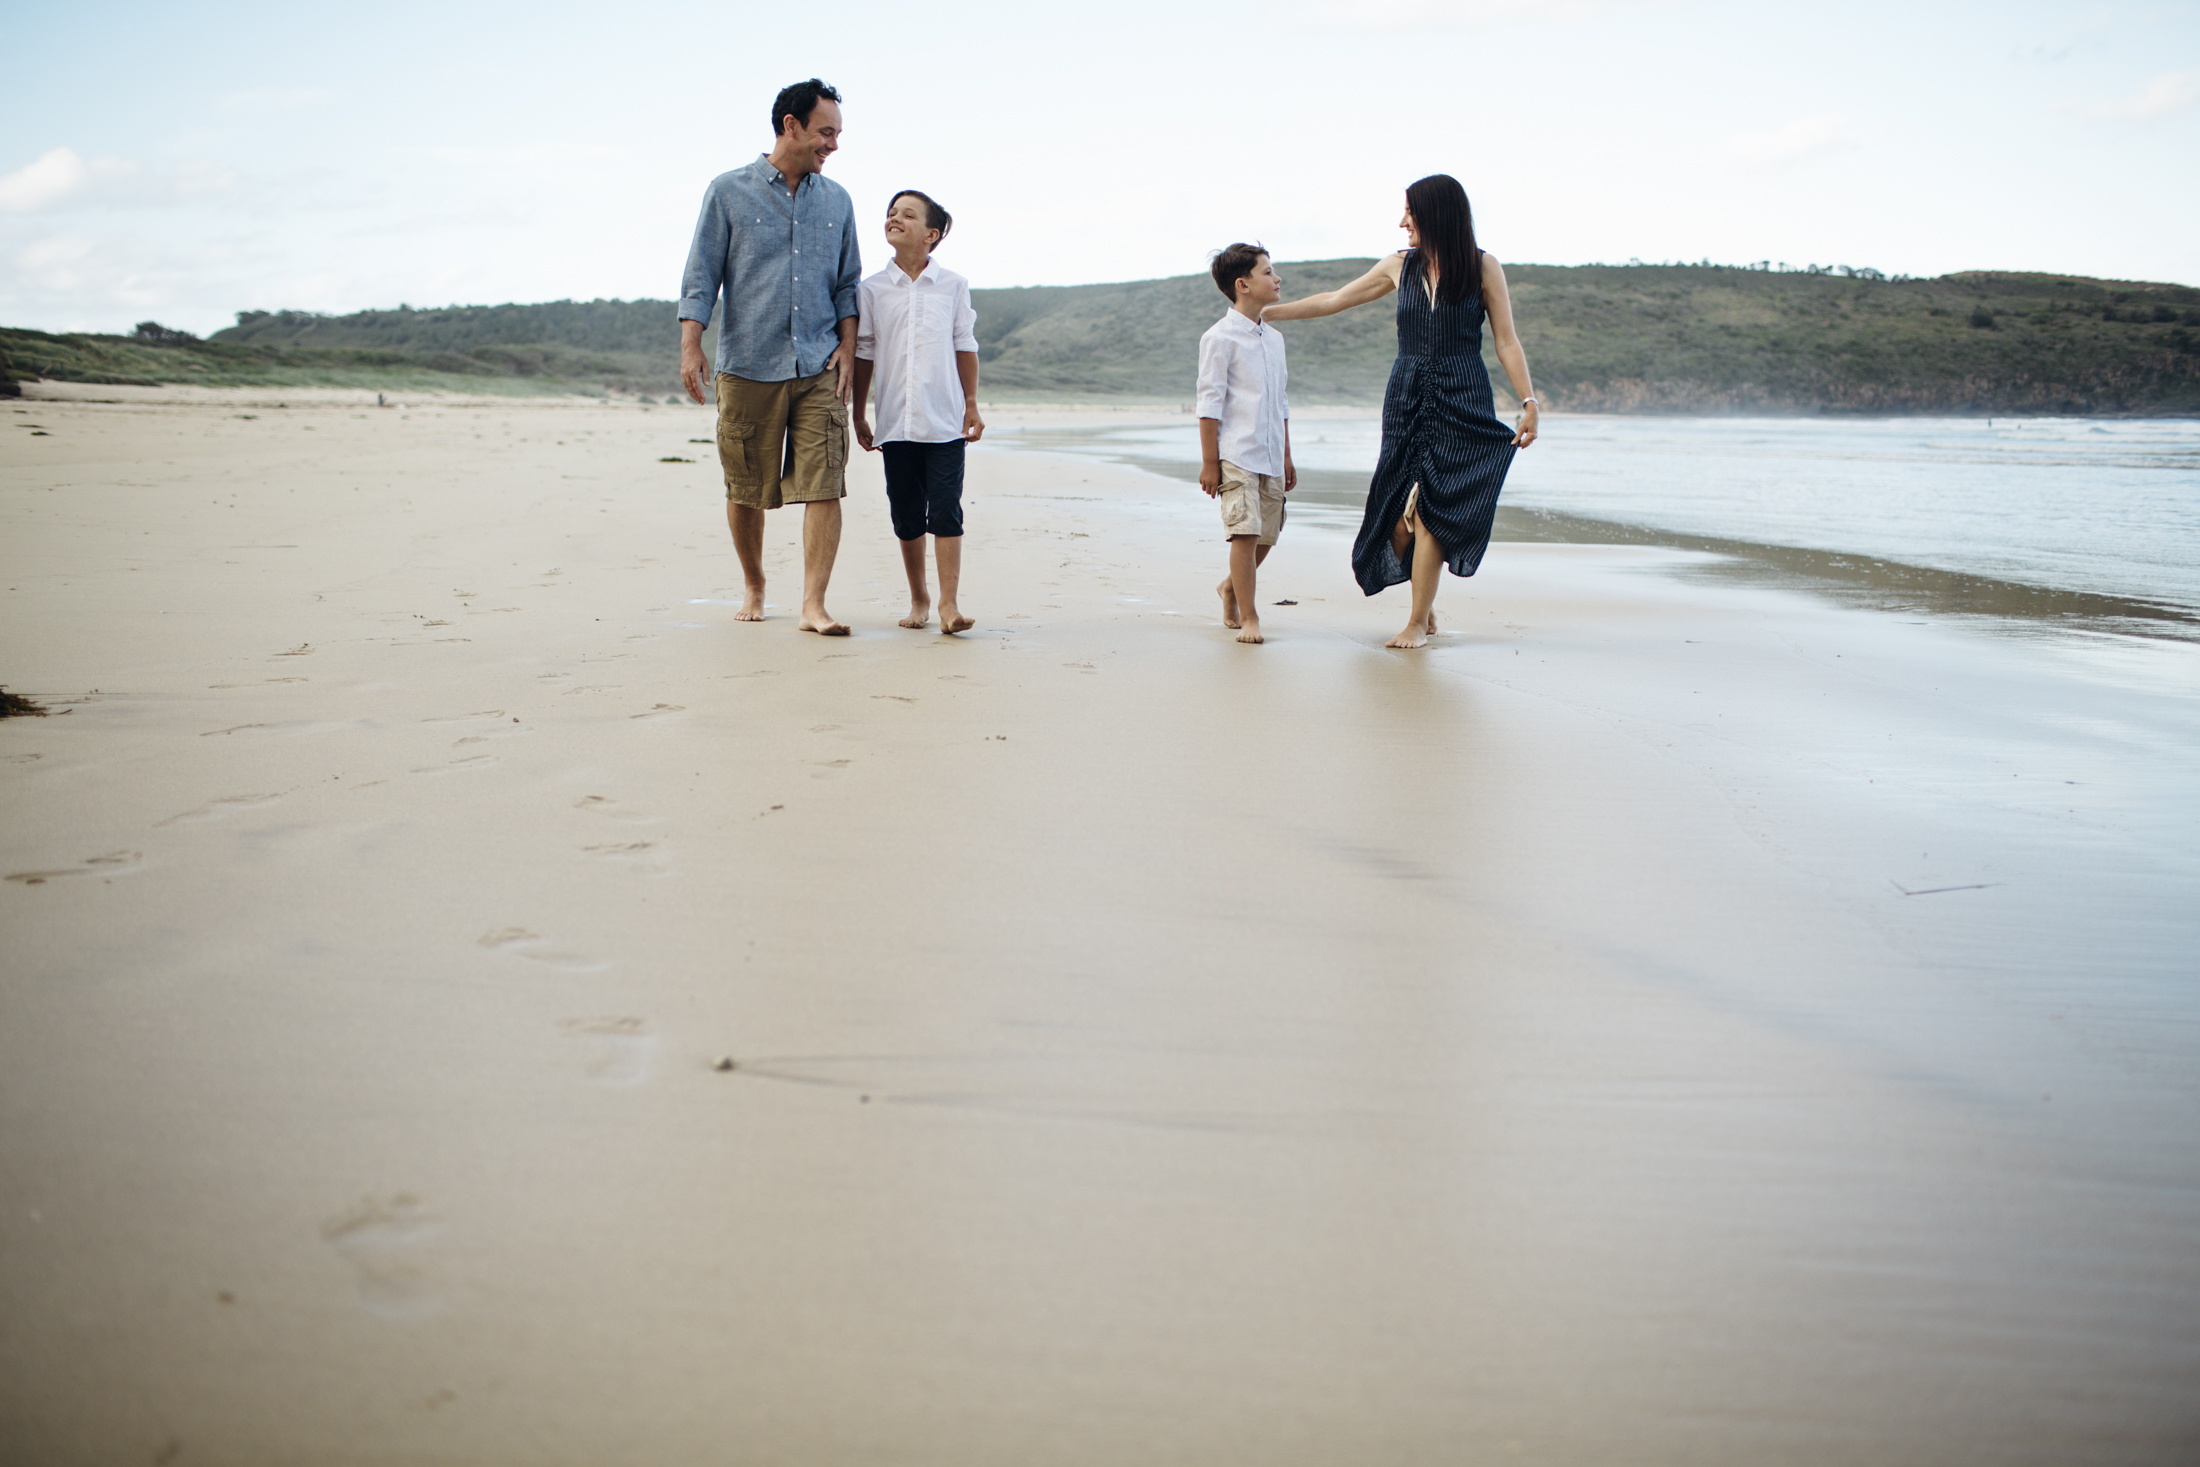 sheridan_nilsson_northern_beaches_lifestyle_family_photographer.012.jpg